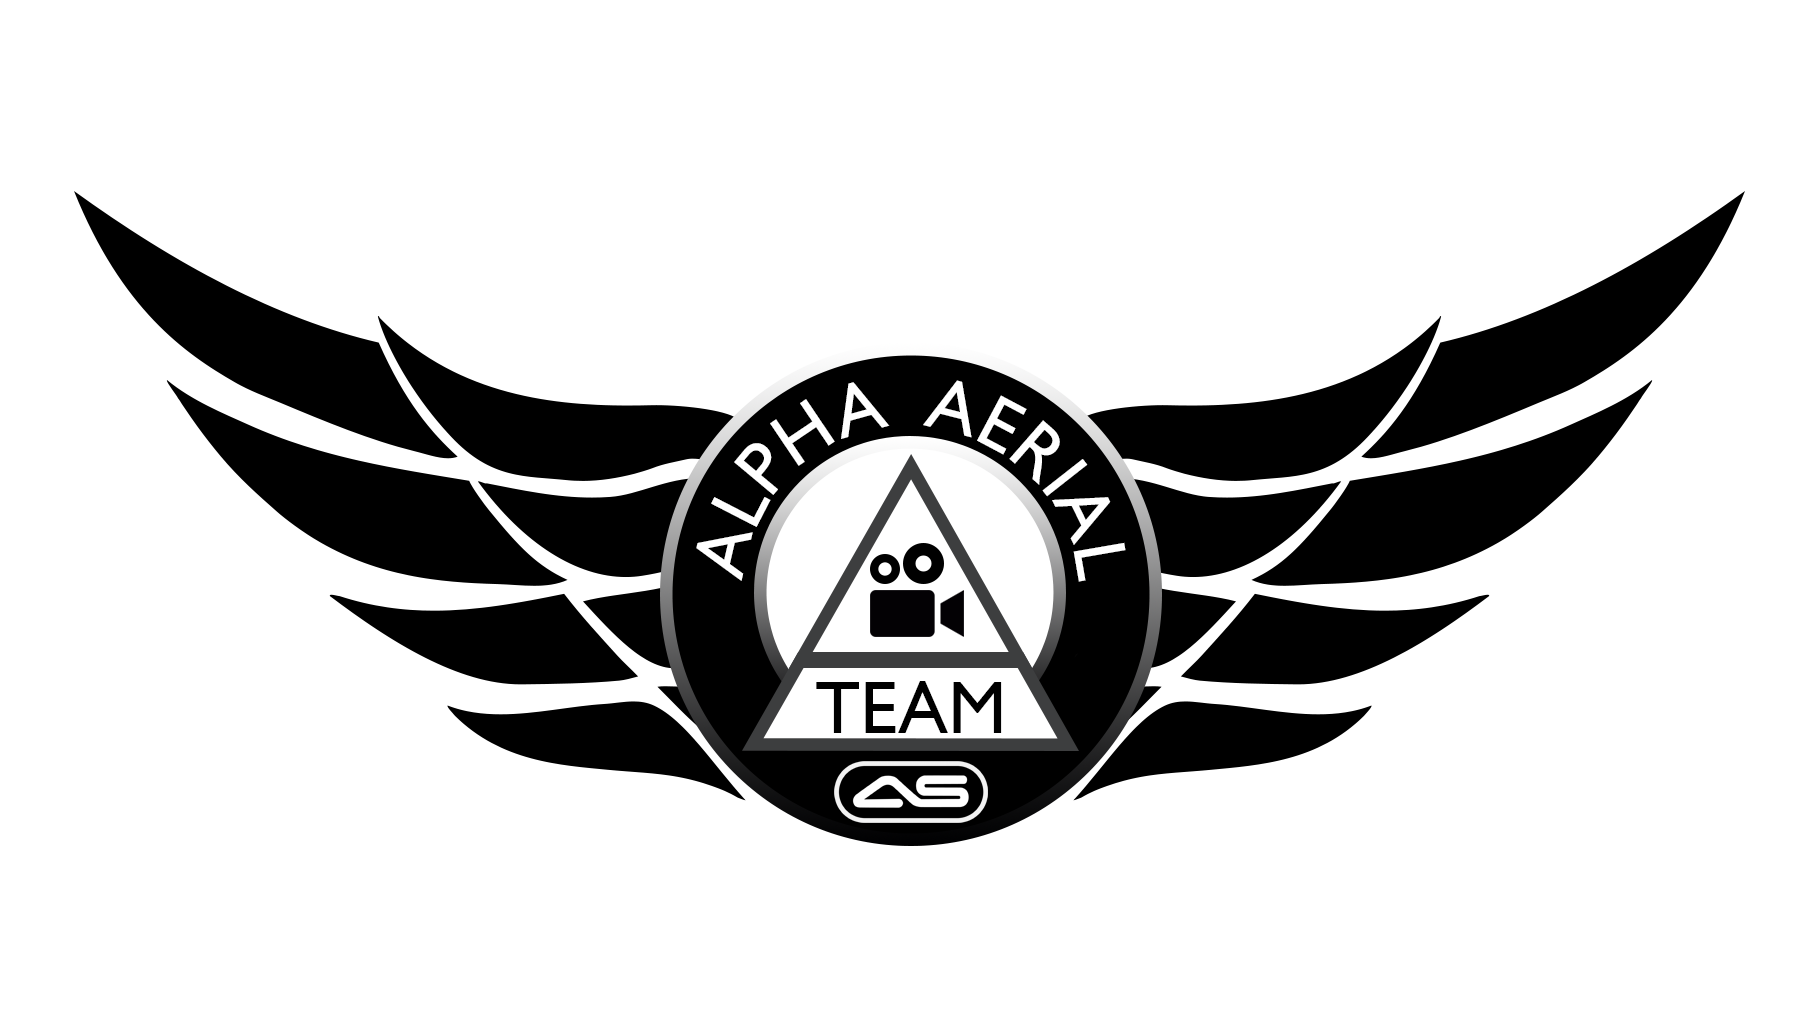 Film company Alpha Aerial Team